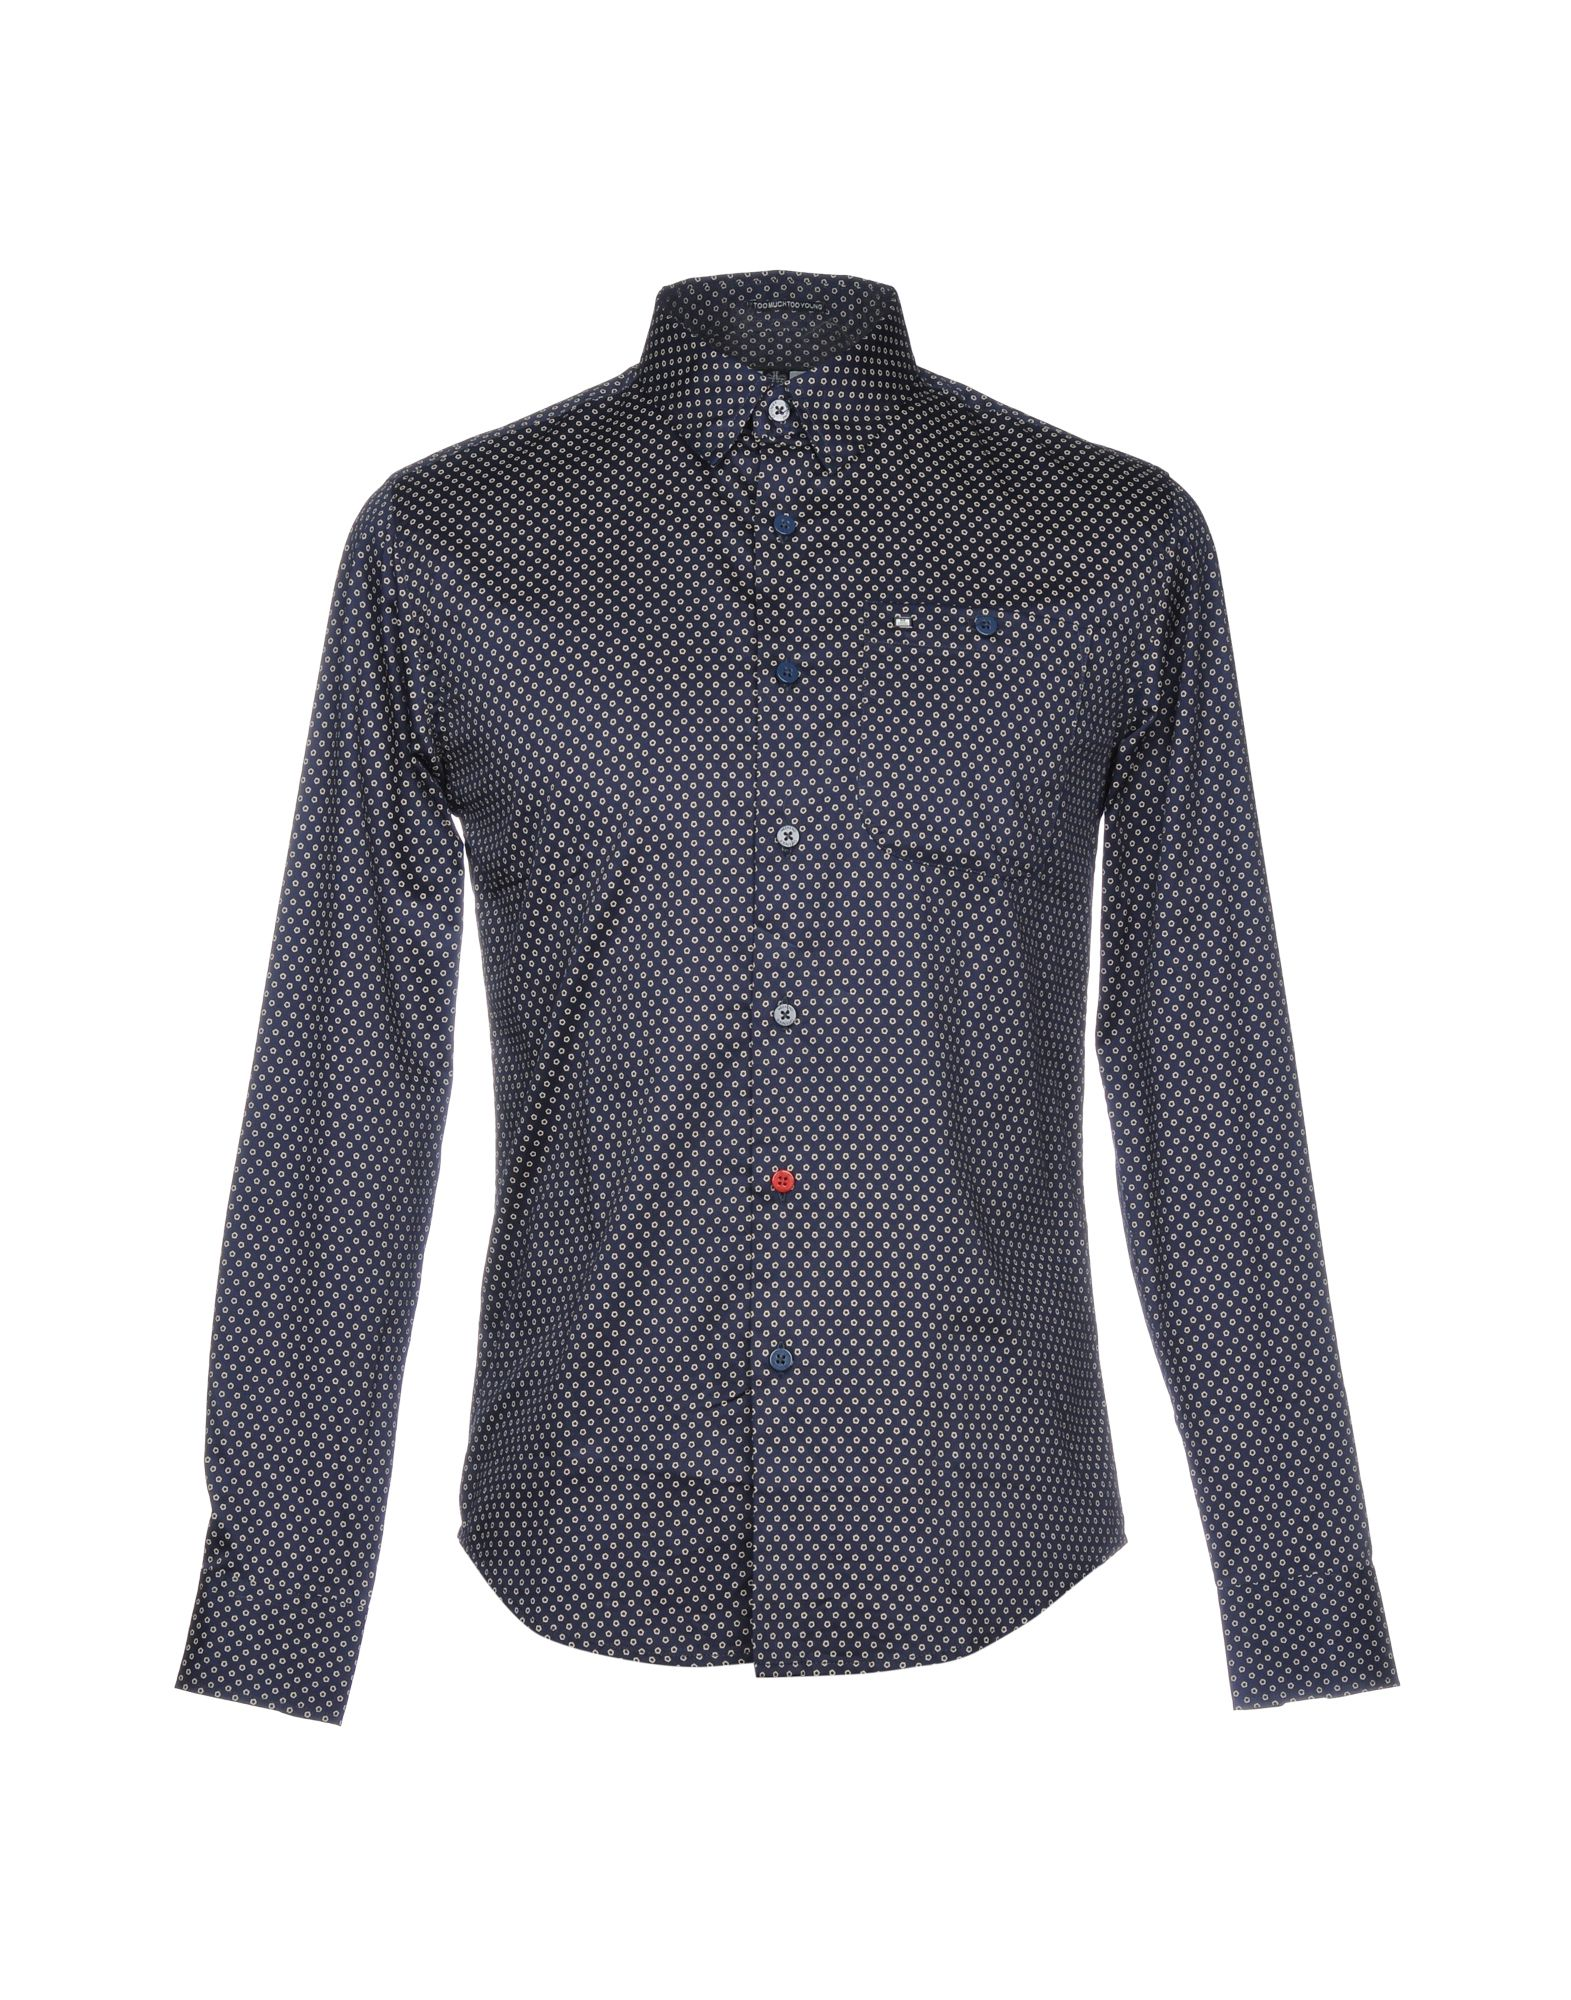 WEEKEND OFFENDER Pубашка футболка weekend offender